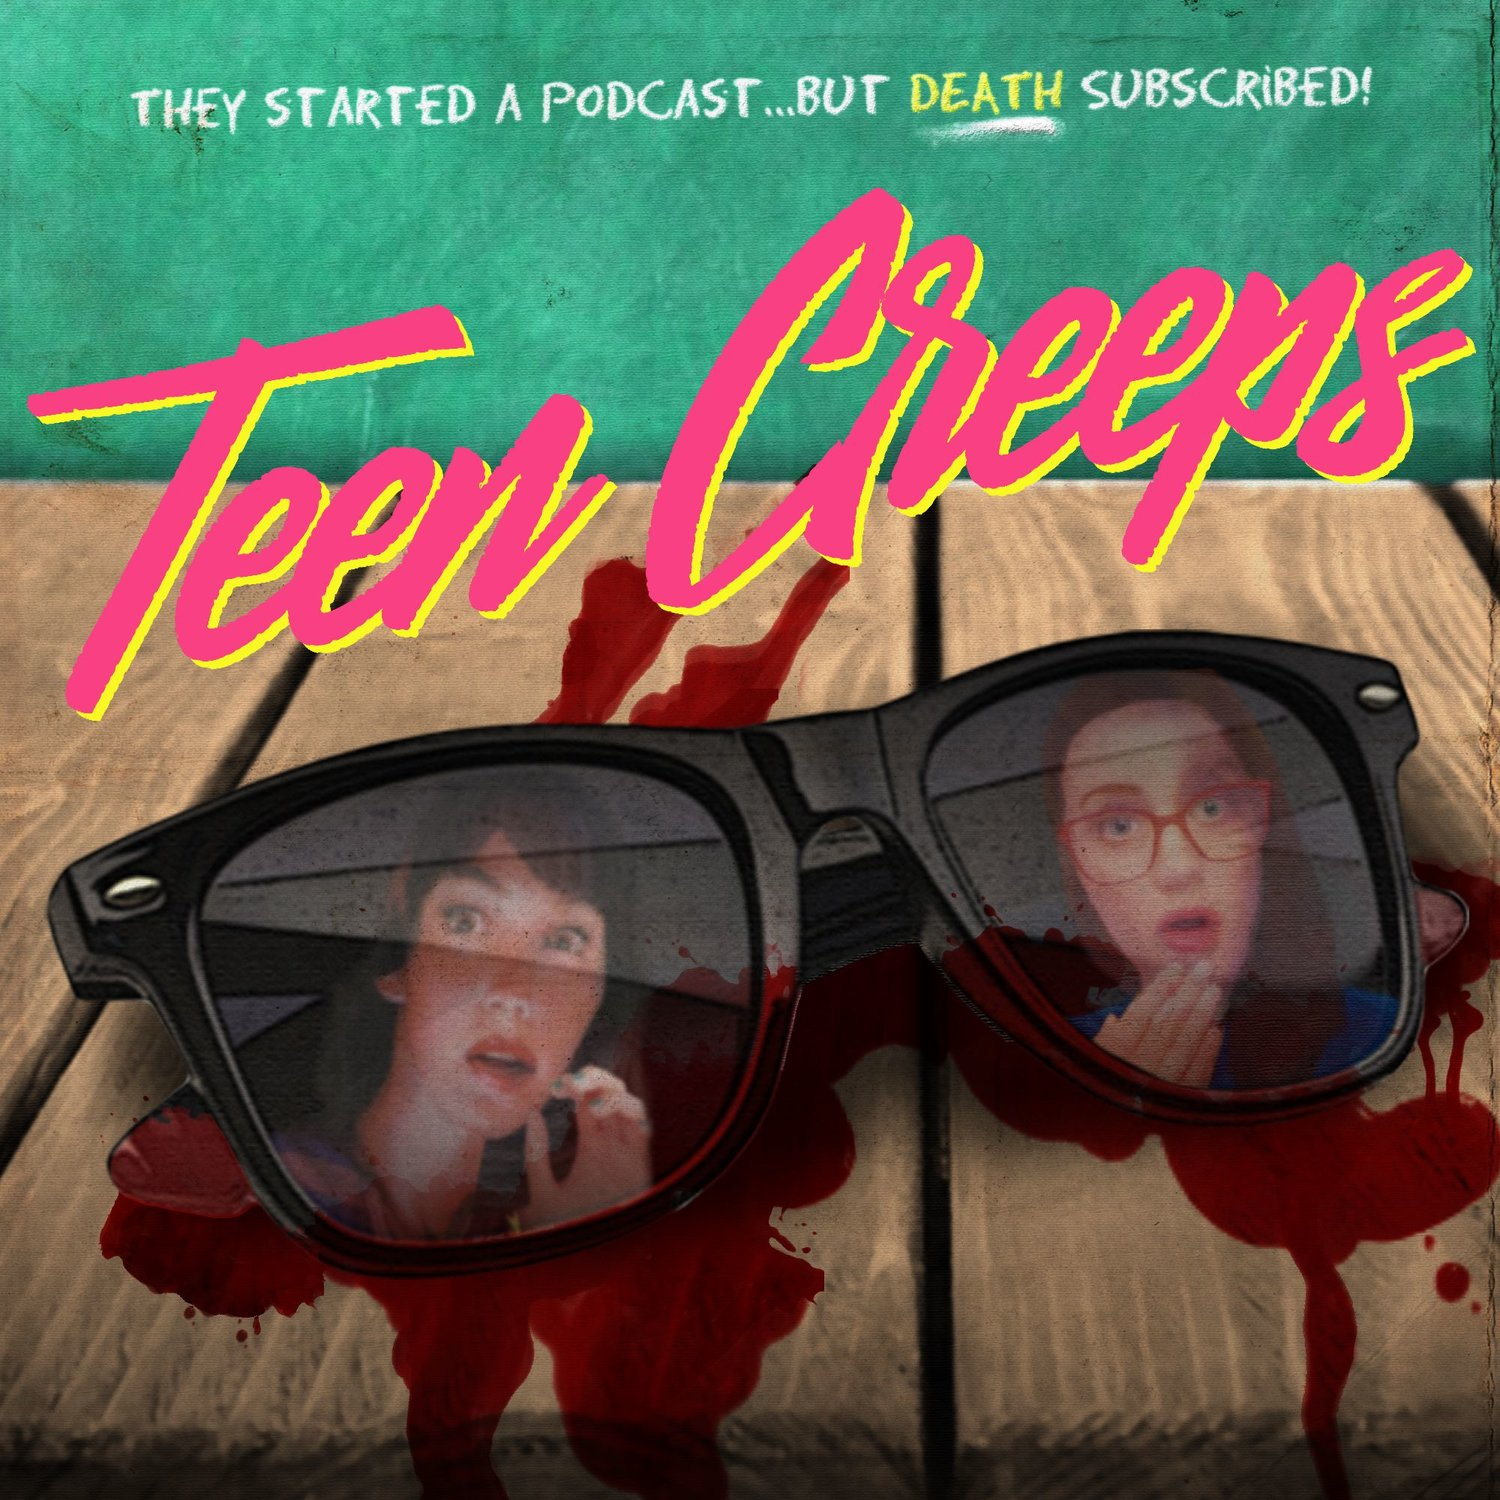 I guested on Lindsay Katai's incredible podcast  Teen Creeps  and read Christopher Pike's  The Immortal  about sexy teenagers, Greece vacations, and eating glass.